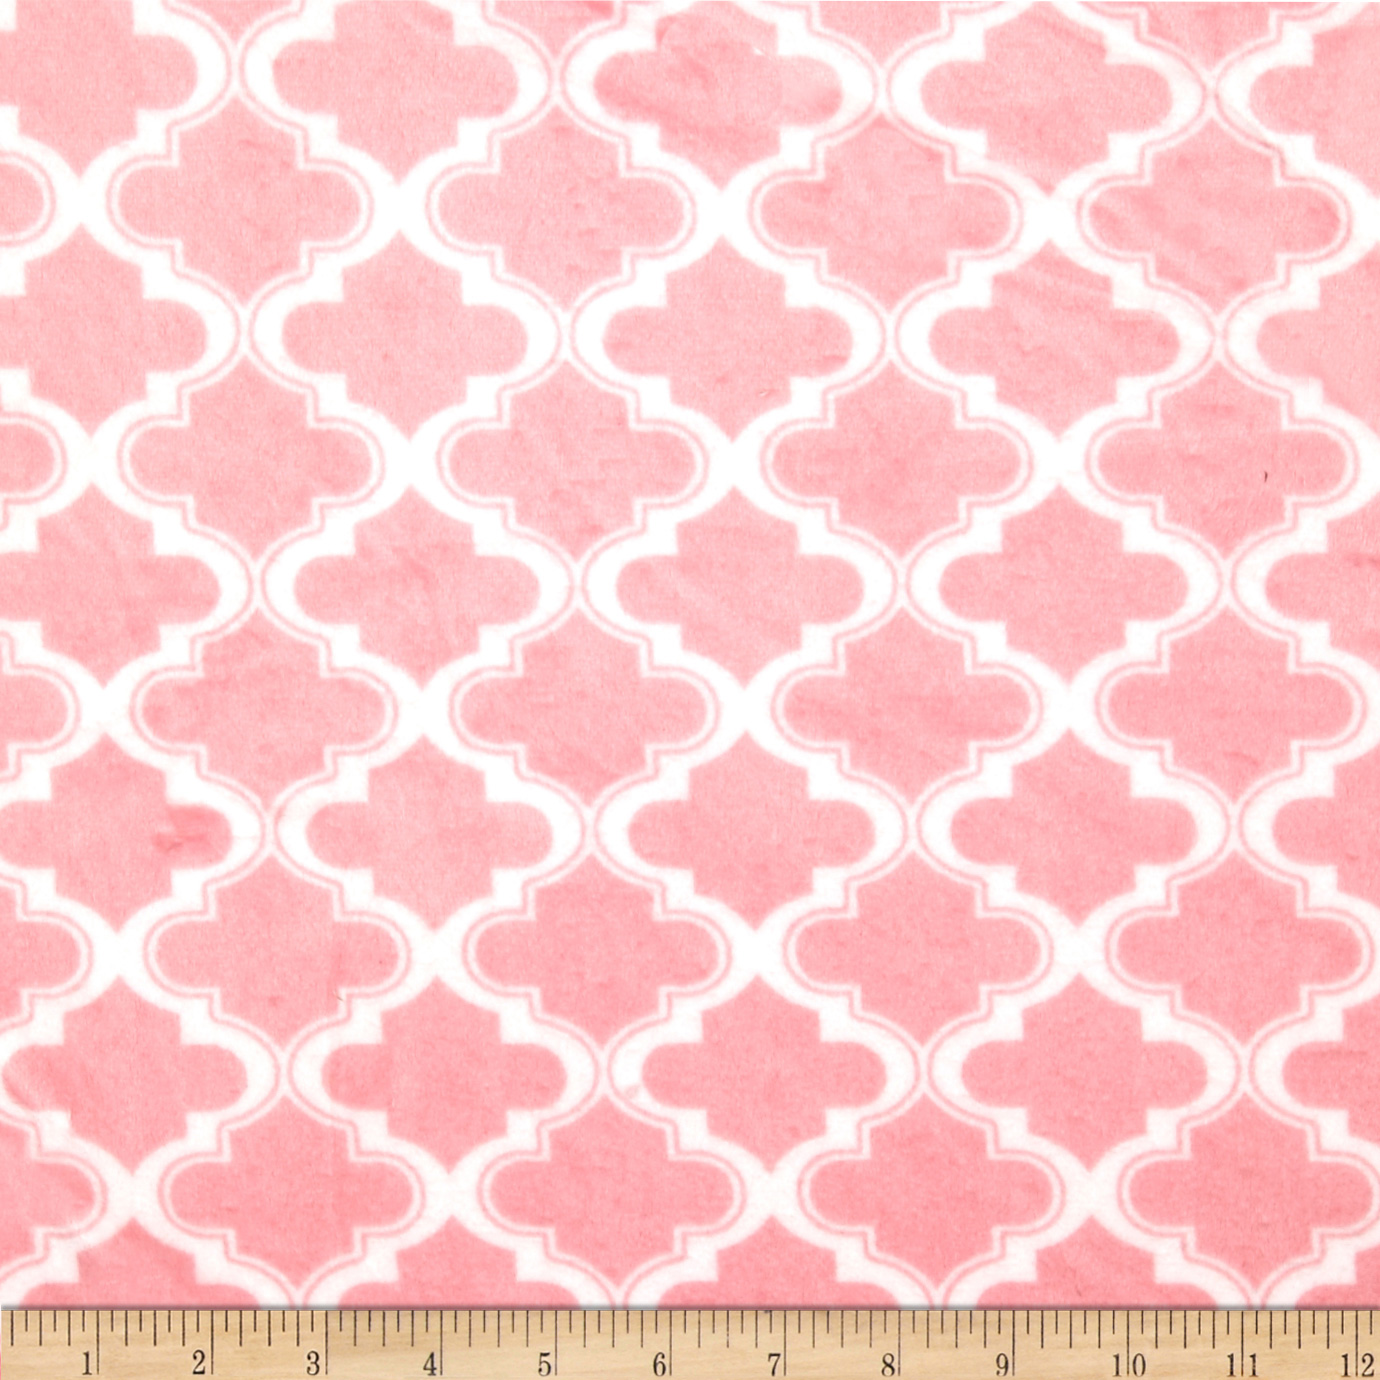 Minky Moroccan Tile Light Pink Fabric